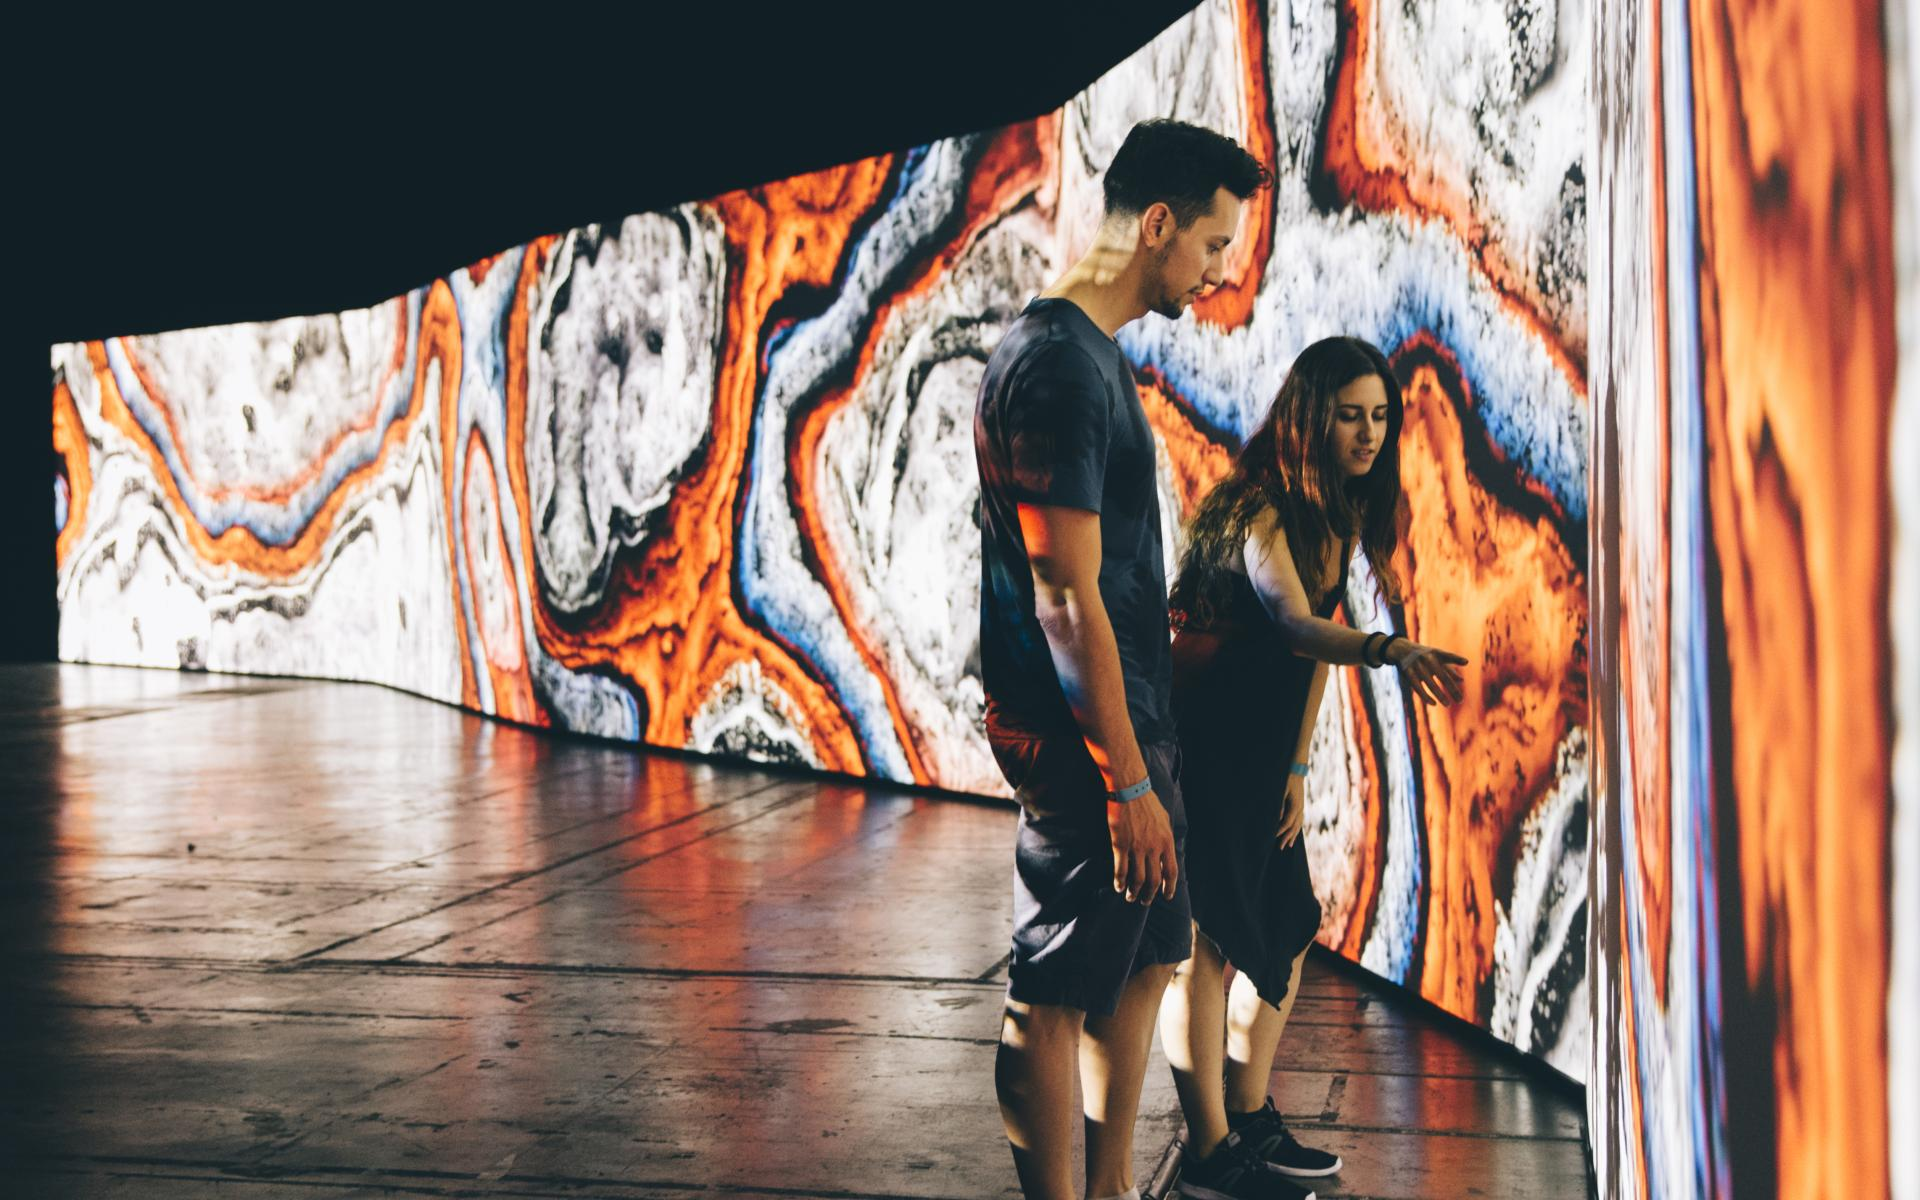 Sónar 2016 opens with the monumental new media art installation